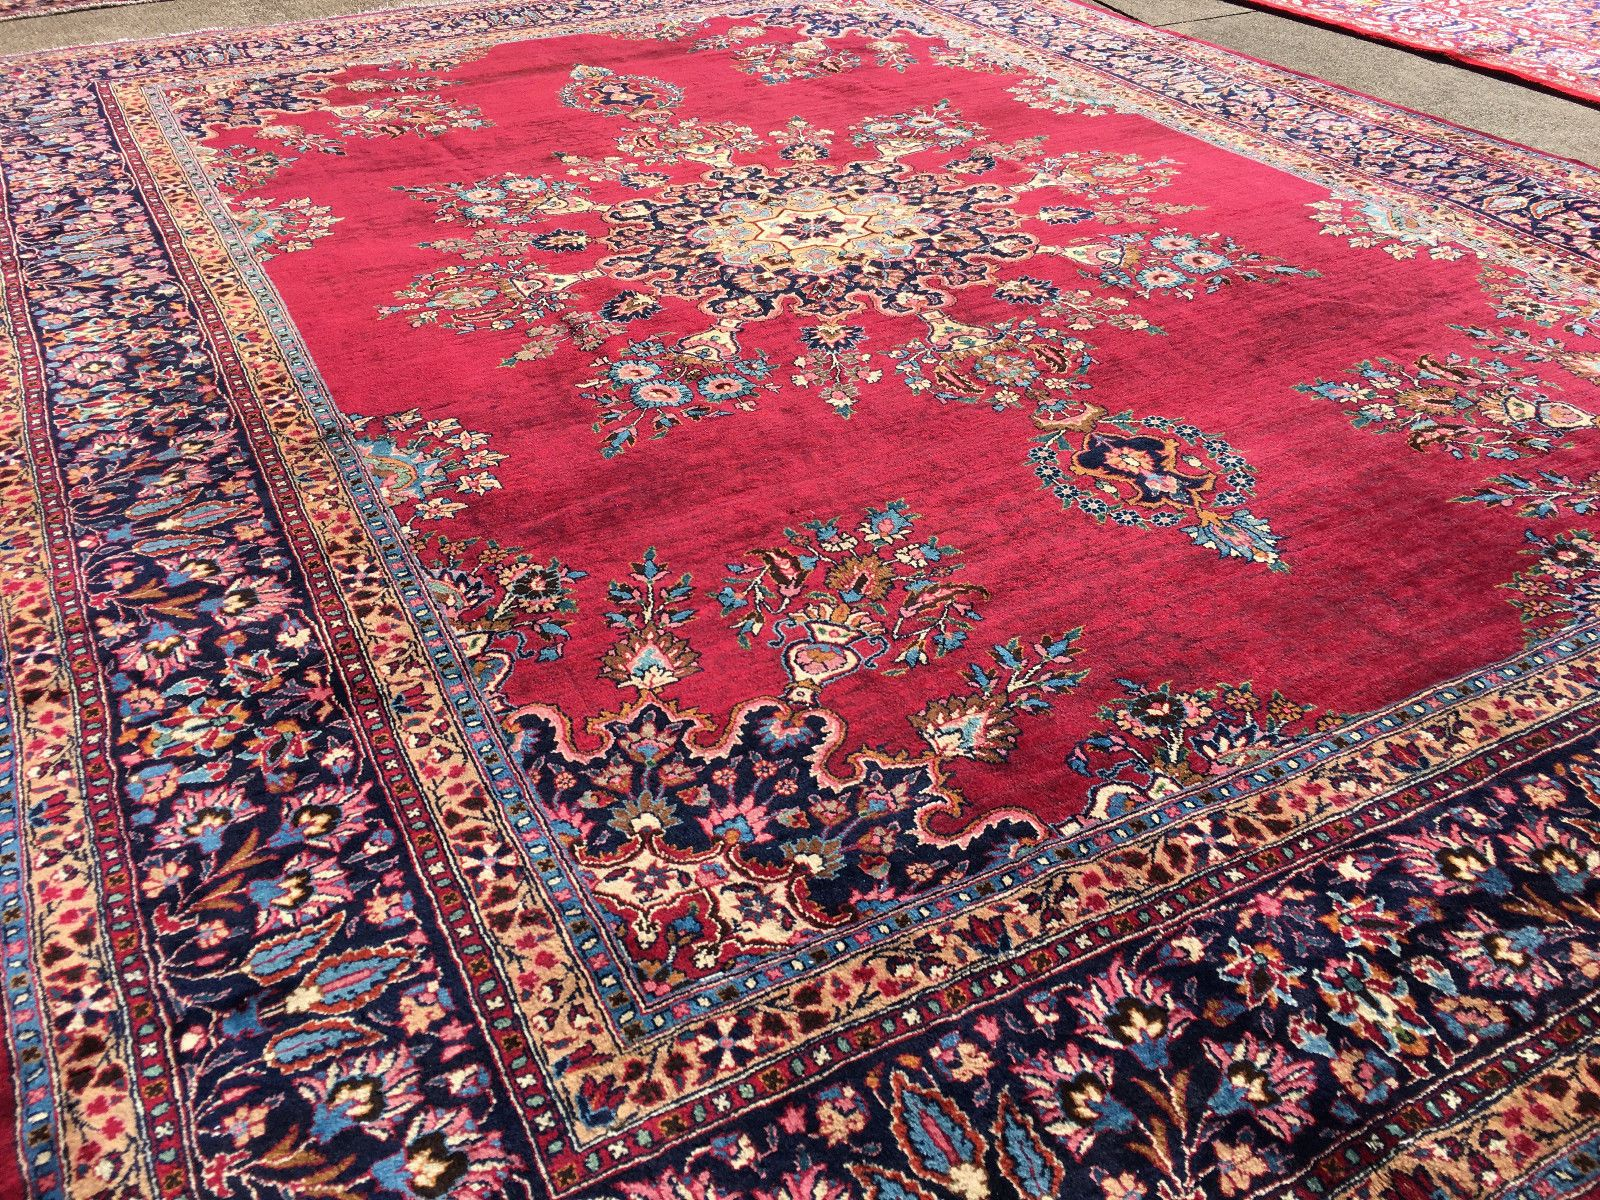 10x14 Hand Knotted Persian Iran Rug Wool Kerman Area Rugs 10 X 14 Ft 9 13 Woven